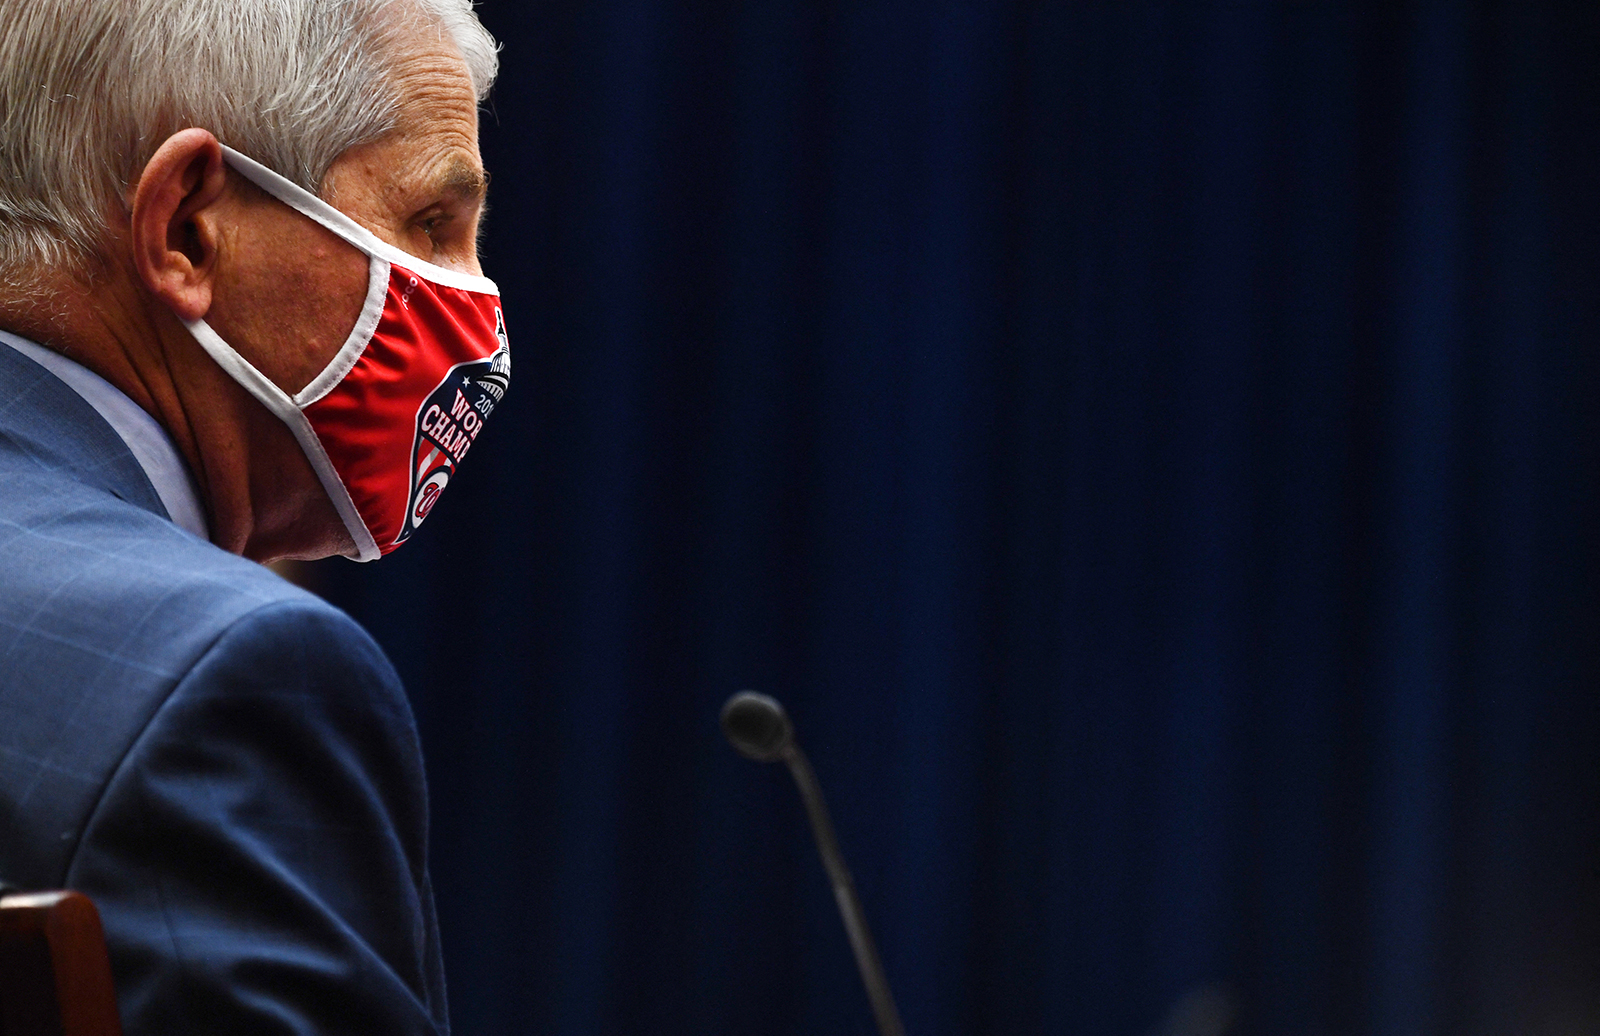 Dr. Anthony Fauci, director of the National Institute of Allergy and Infectious Diseases, wears a Washington Nationals protective mask during a hearing in Washington, DC on July 31.